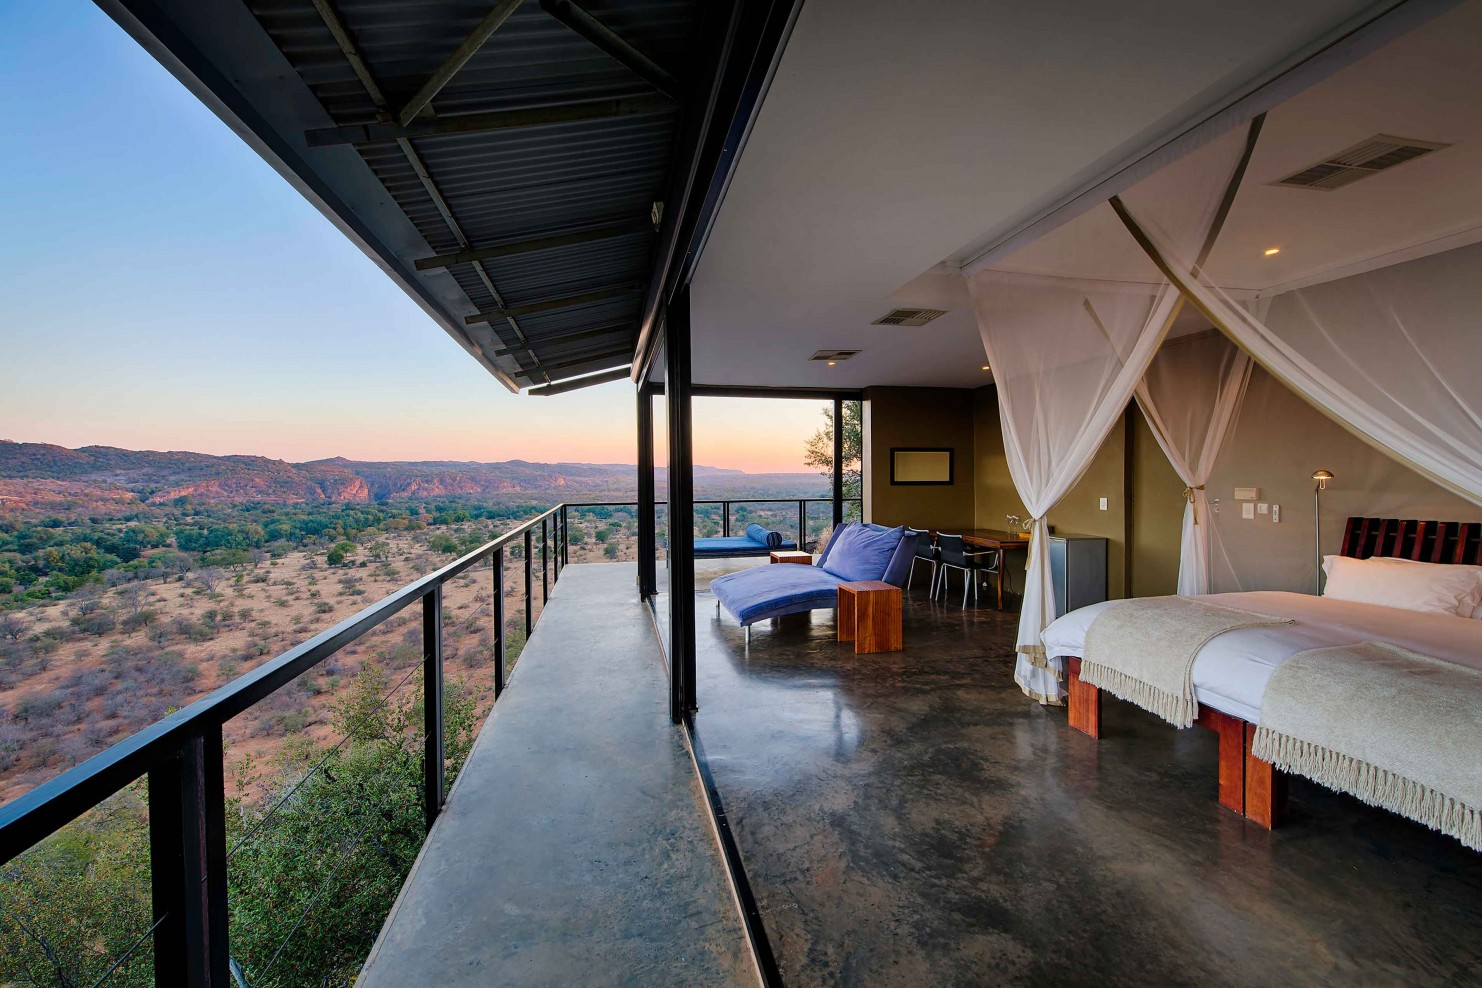 Stay at Tented Outposts in the Wild in